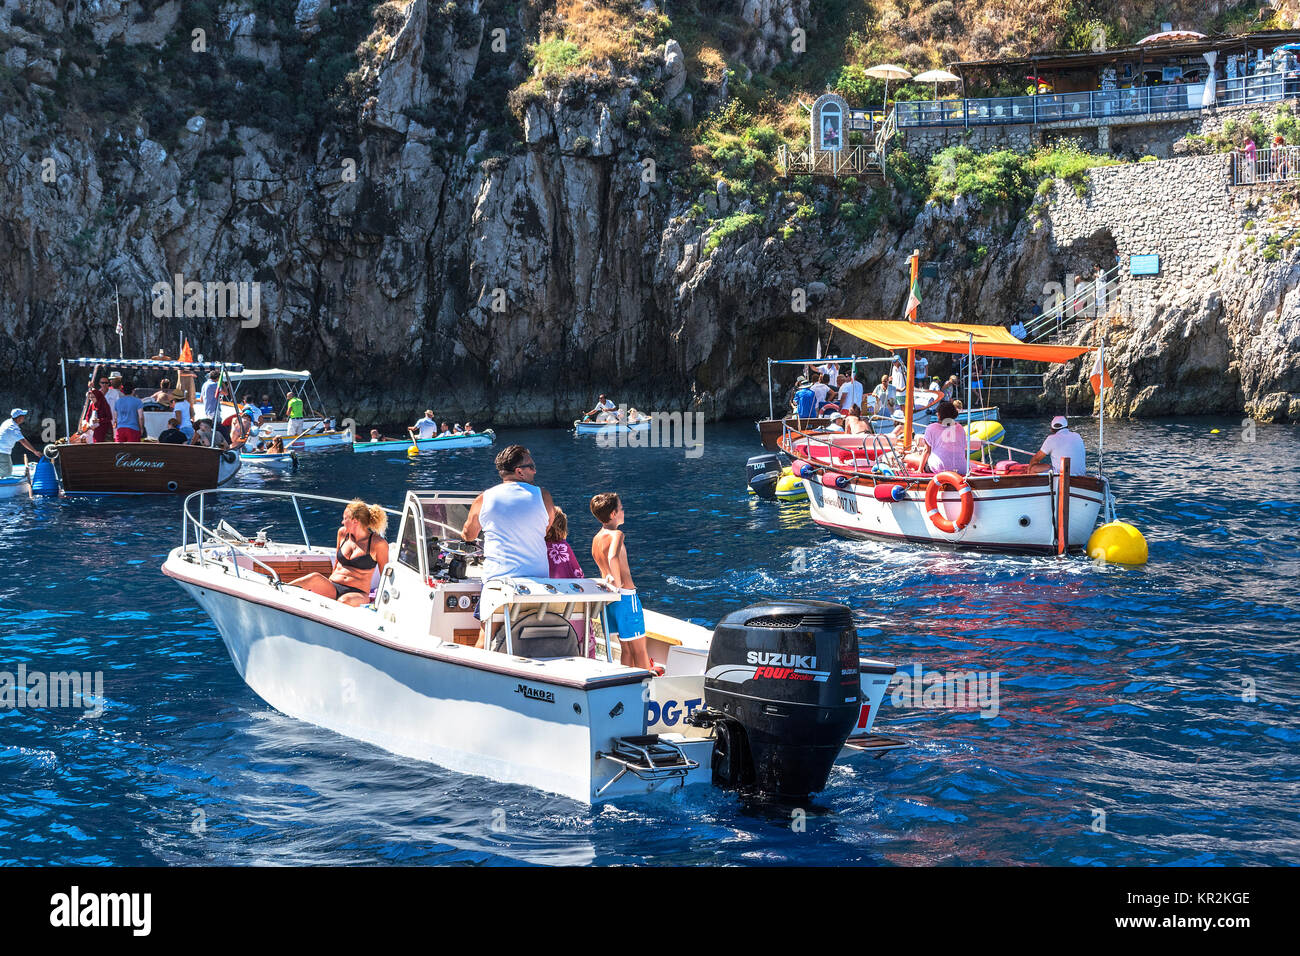 tourists waiting to enter the blue grotto on the island of capri, italy. - Stock Image